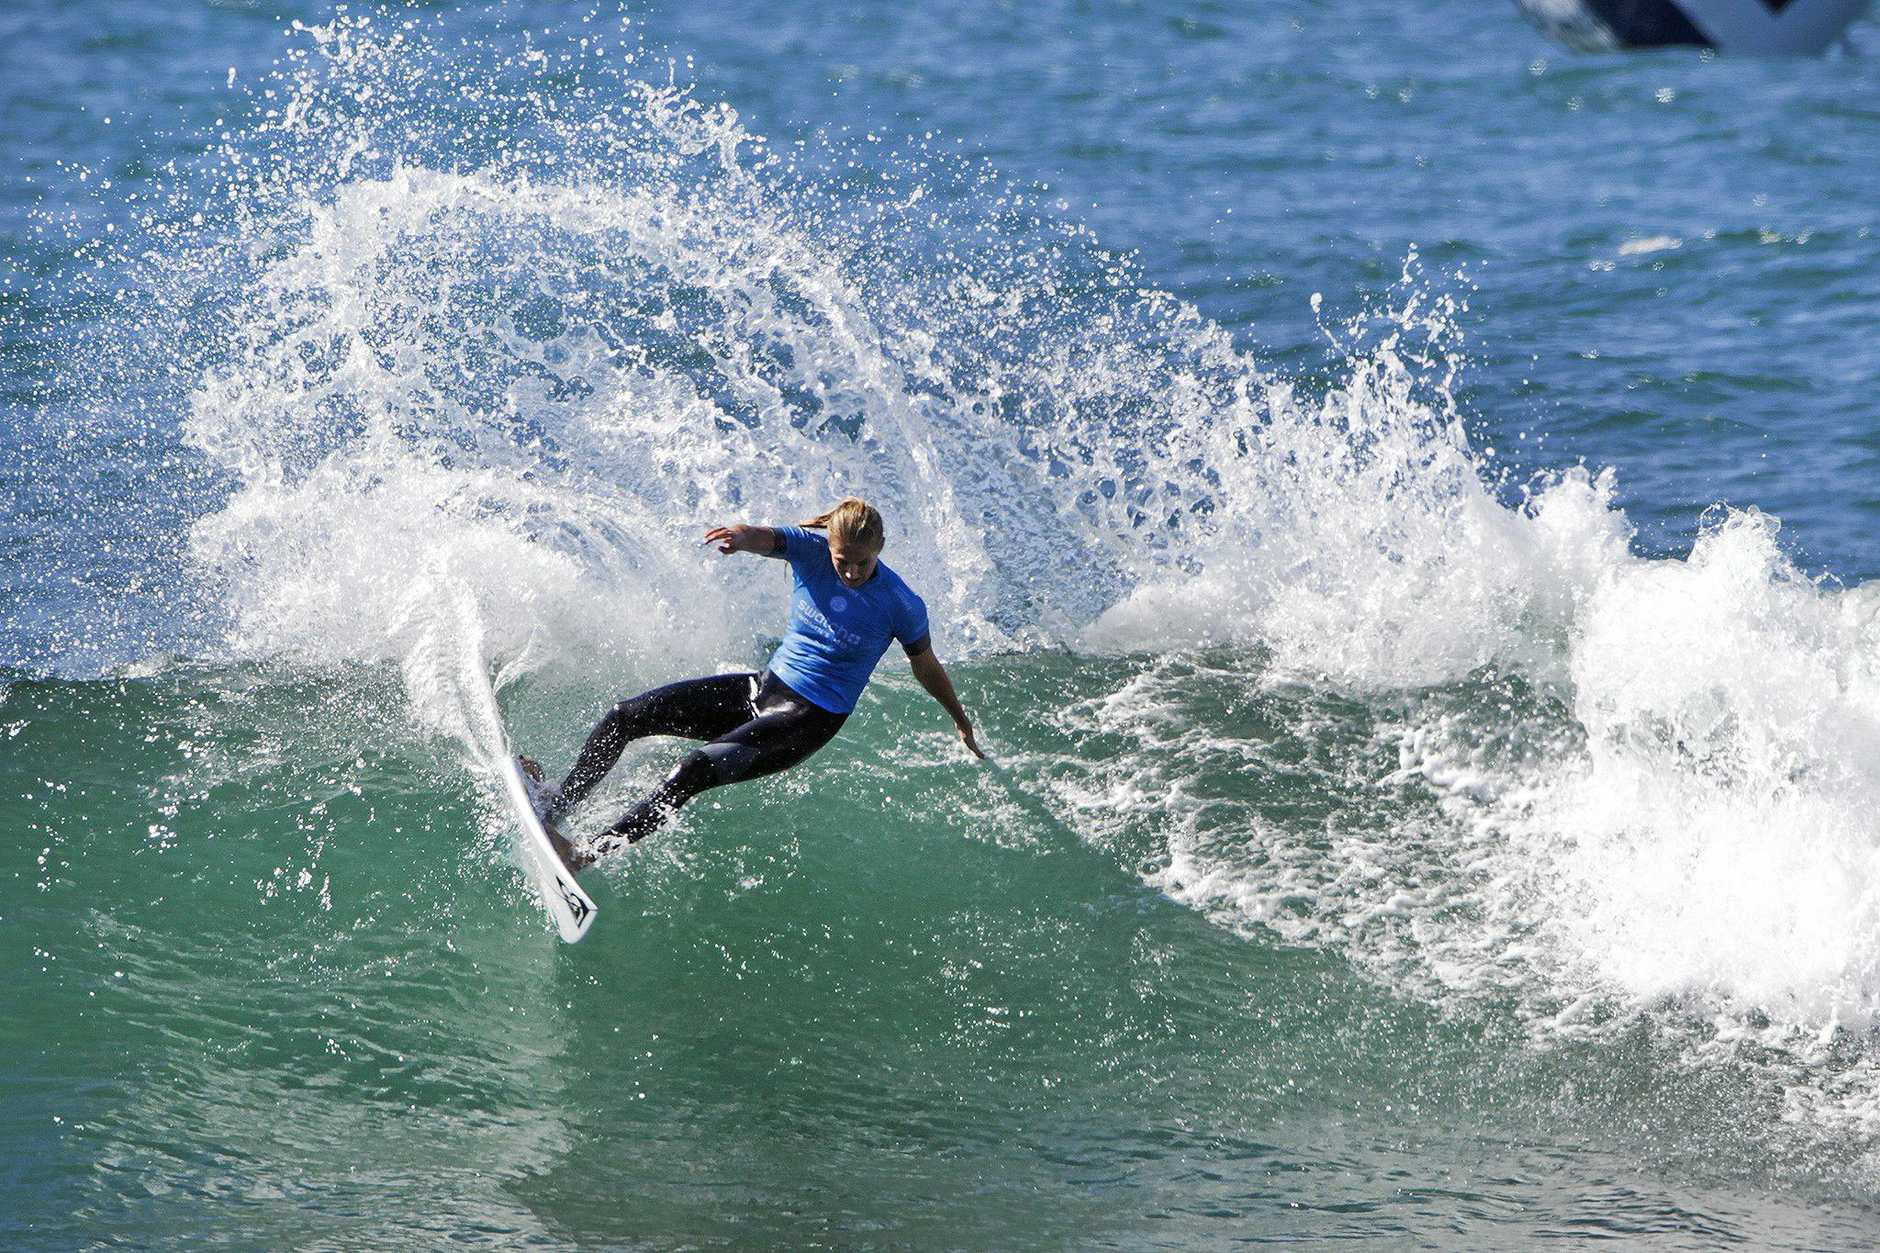 CARVING IT UP: Stephanie Gilmore on her way to a runner-up finish in the women's World Surf League event at Trestles.